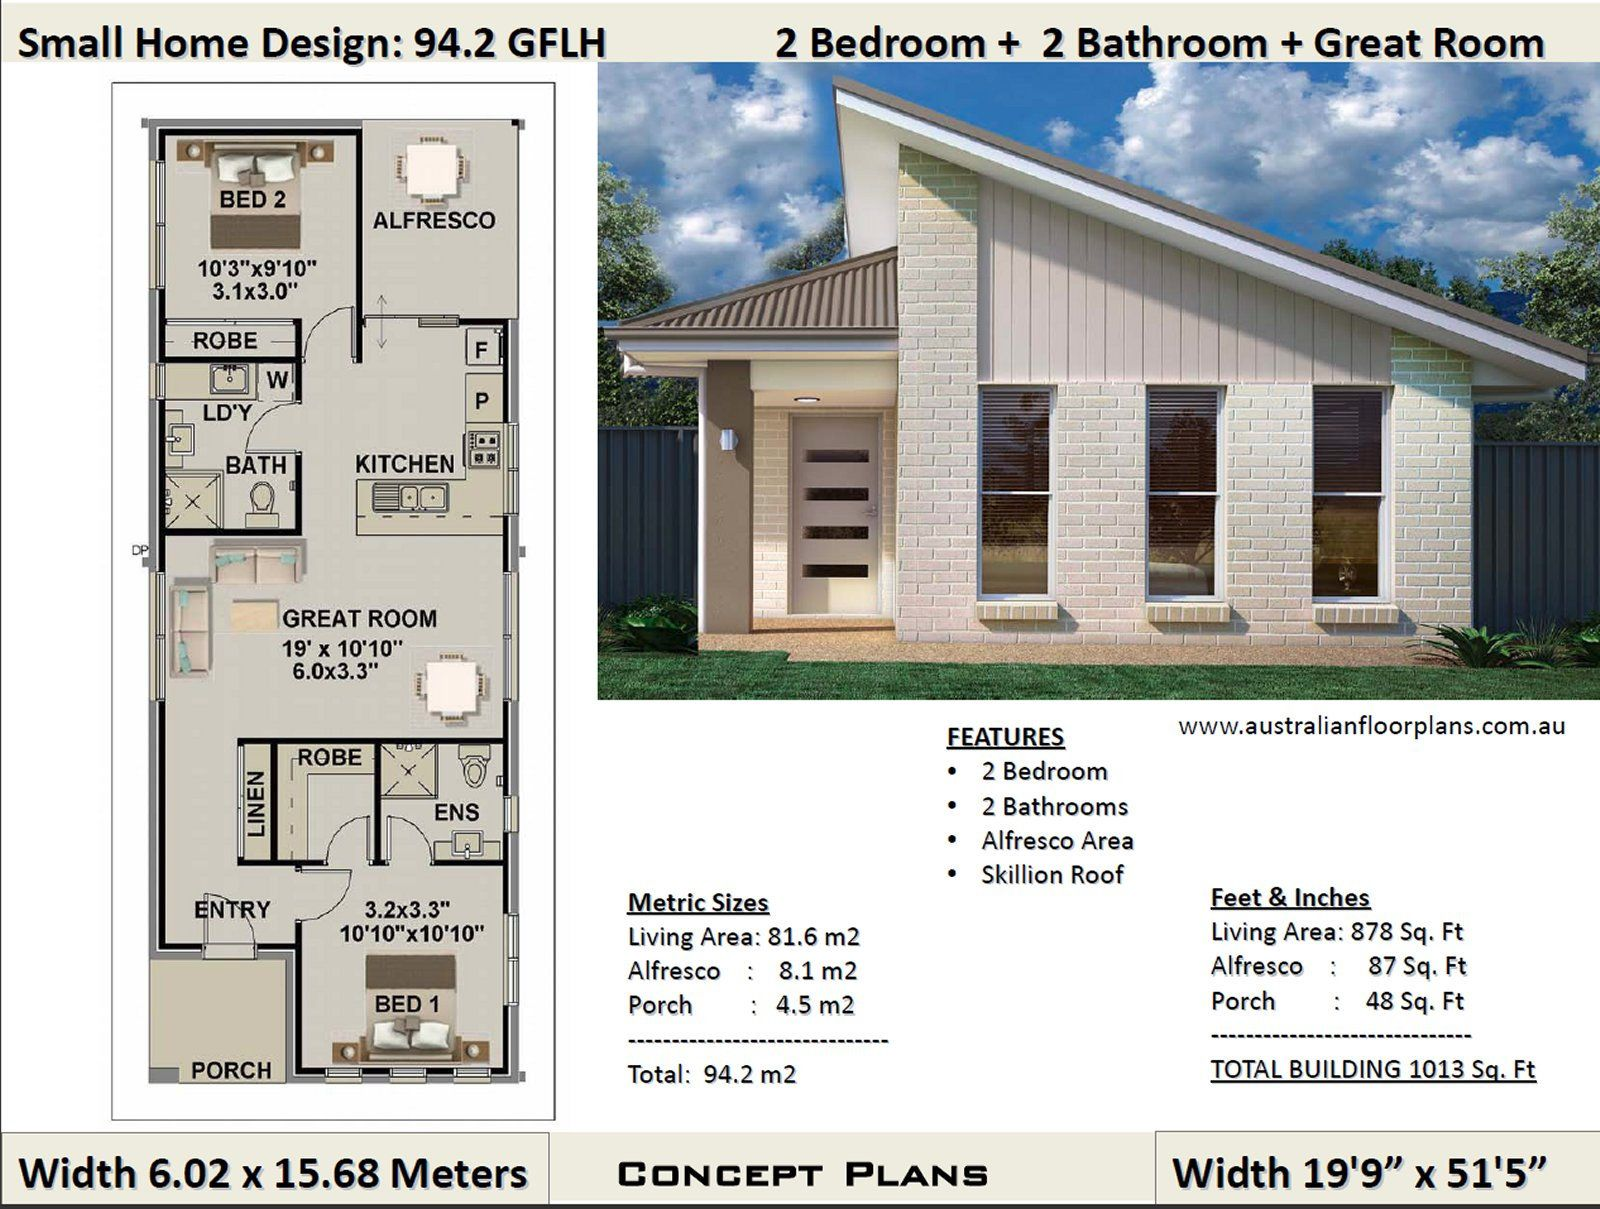 Small House Plan 1000 Sq Foot 94 2 Sq Meters 2 Bedroom Etsy House Plans Australia Small House Design House Plans For Sale